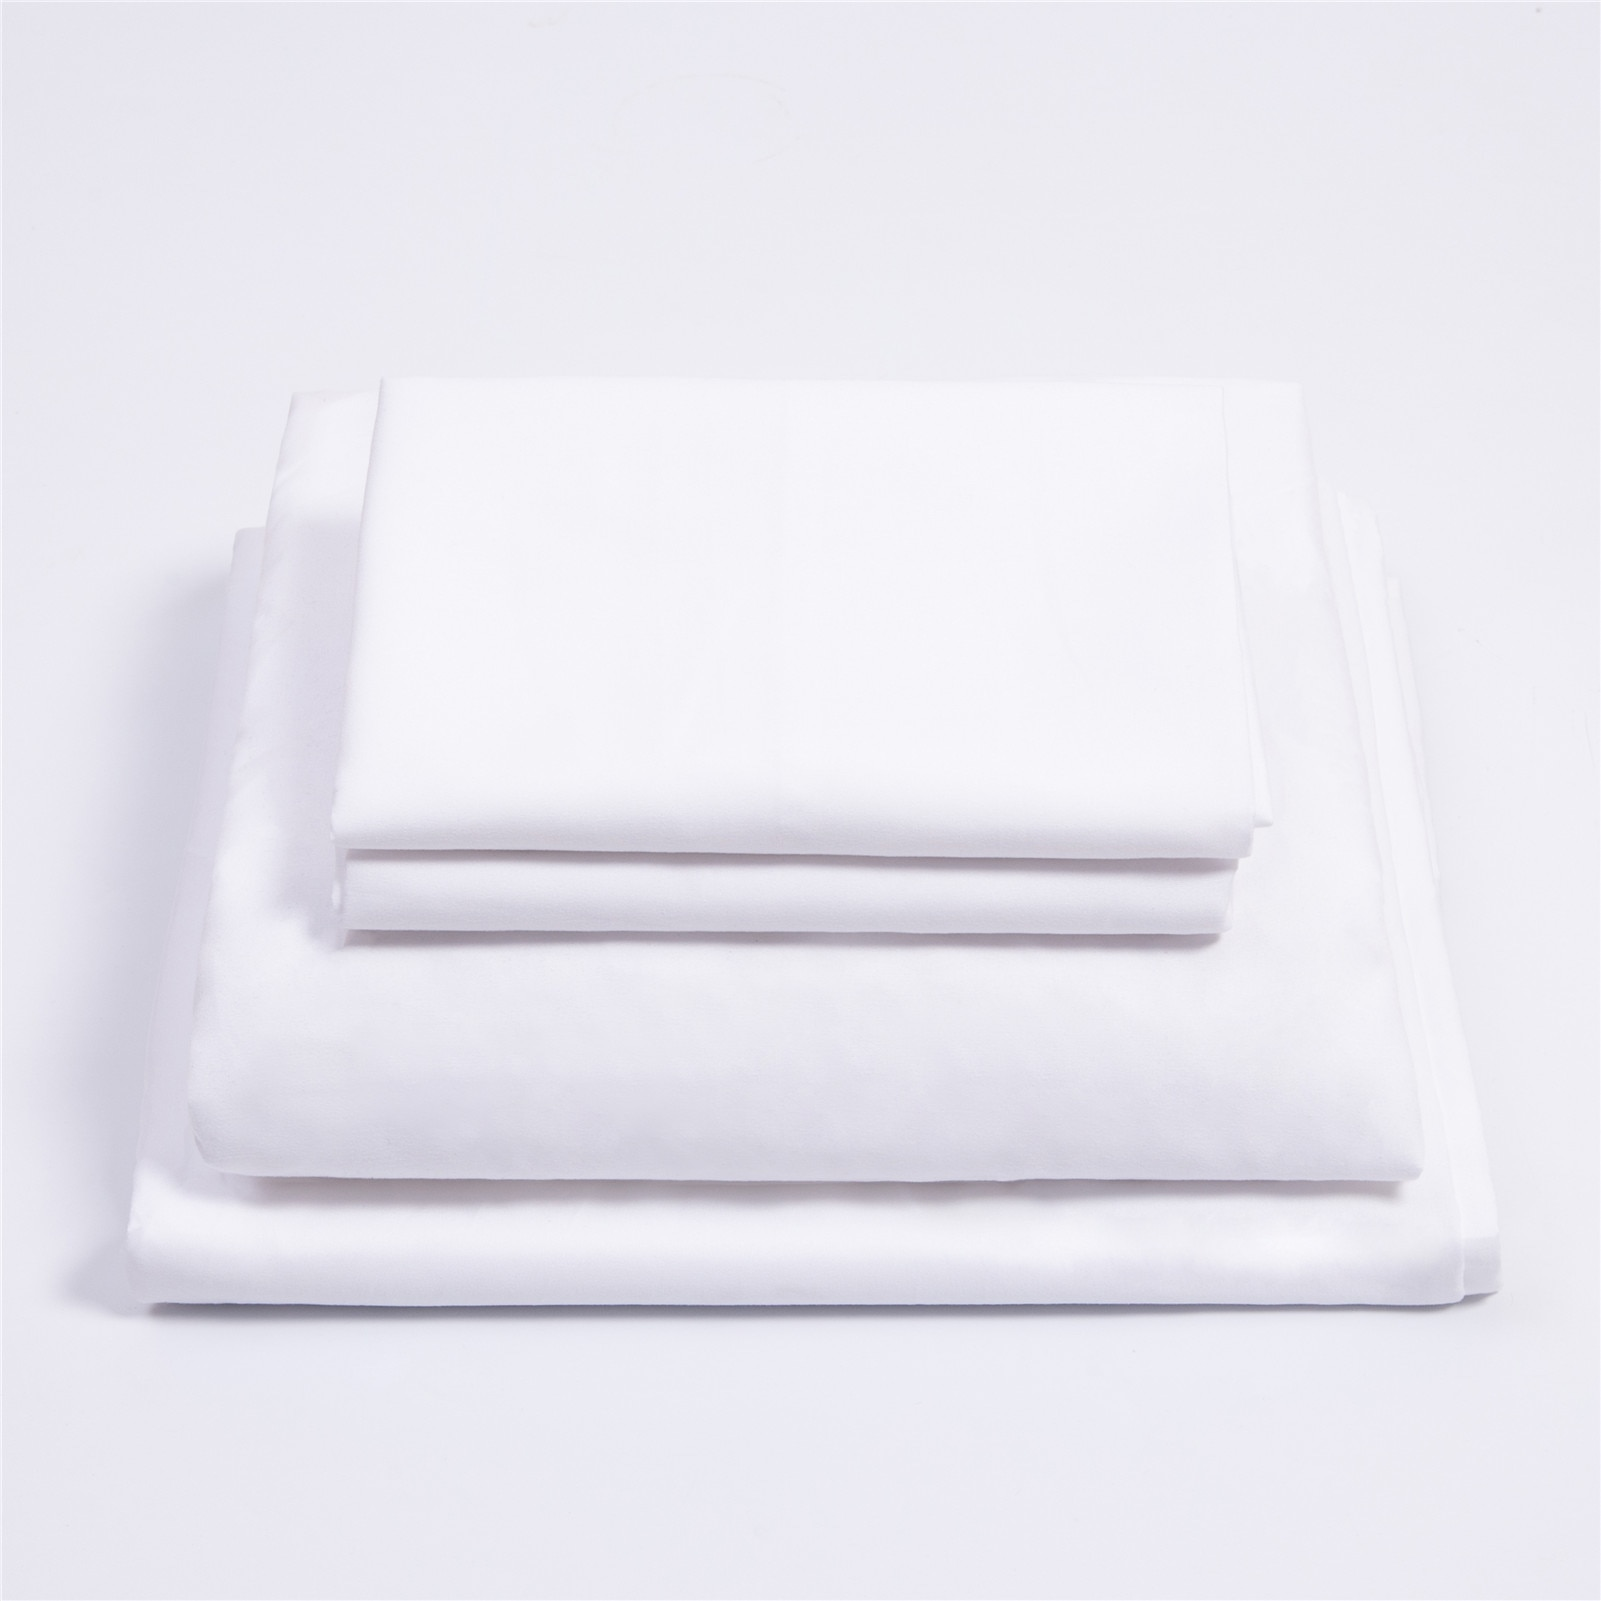 aliexpress - Nordic Solid Color Bed Sets Bed Sheet Bed Cover Fitted Sheet Pillowcases Bedding Sheet for Bedroom Bedclothes King Size 4PCS